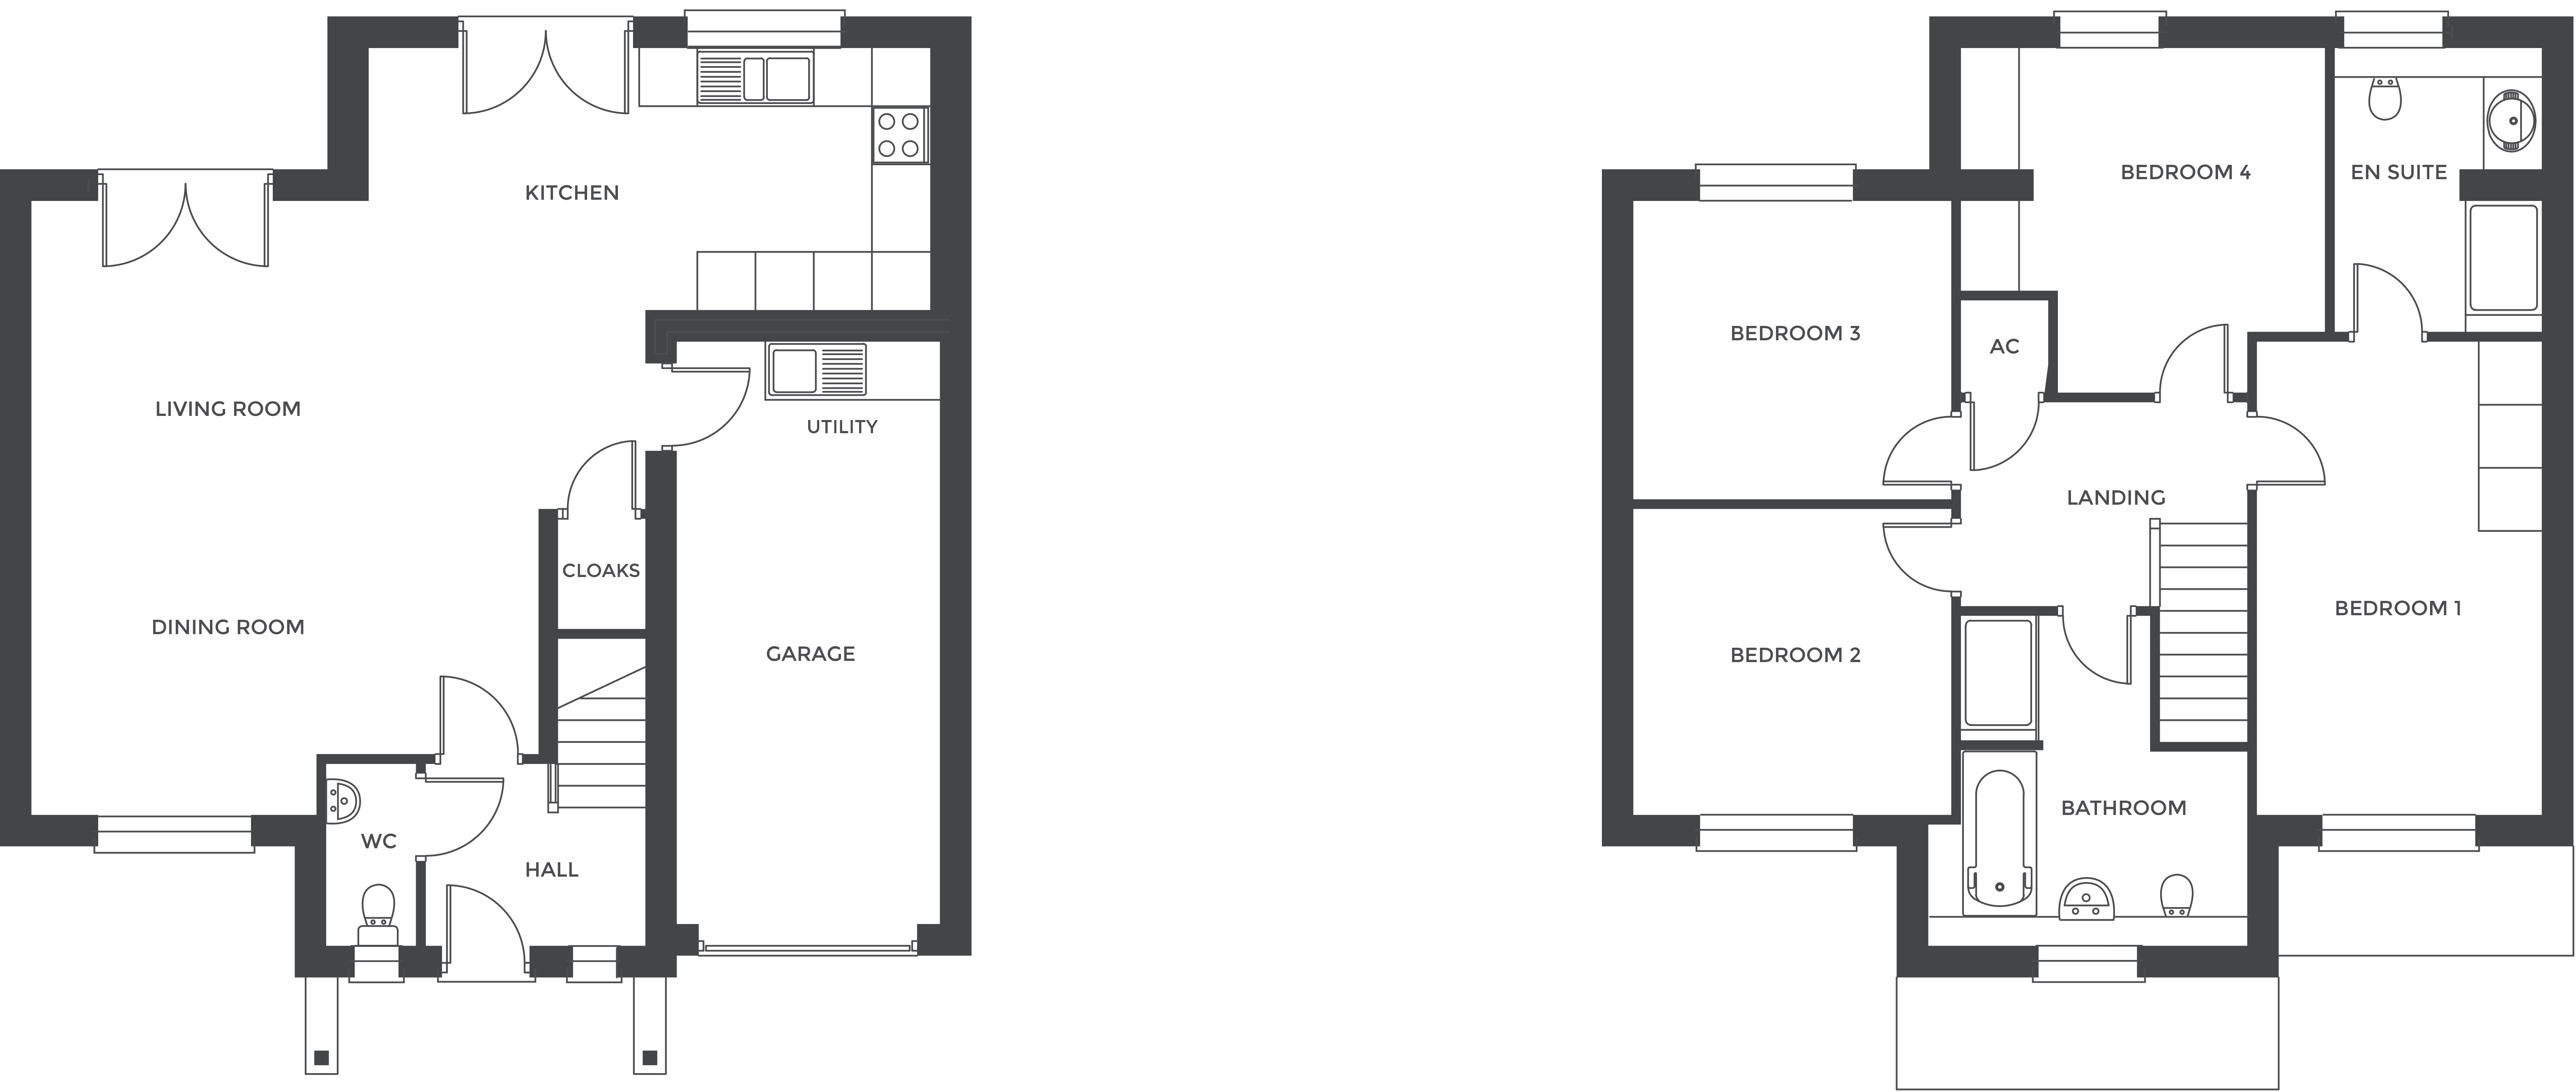 Hathorn Manor, Plot 6 floor plan